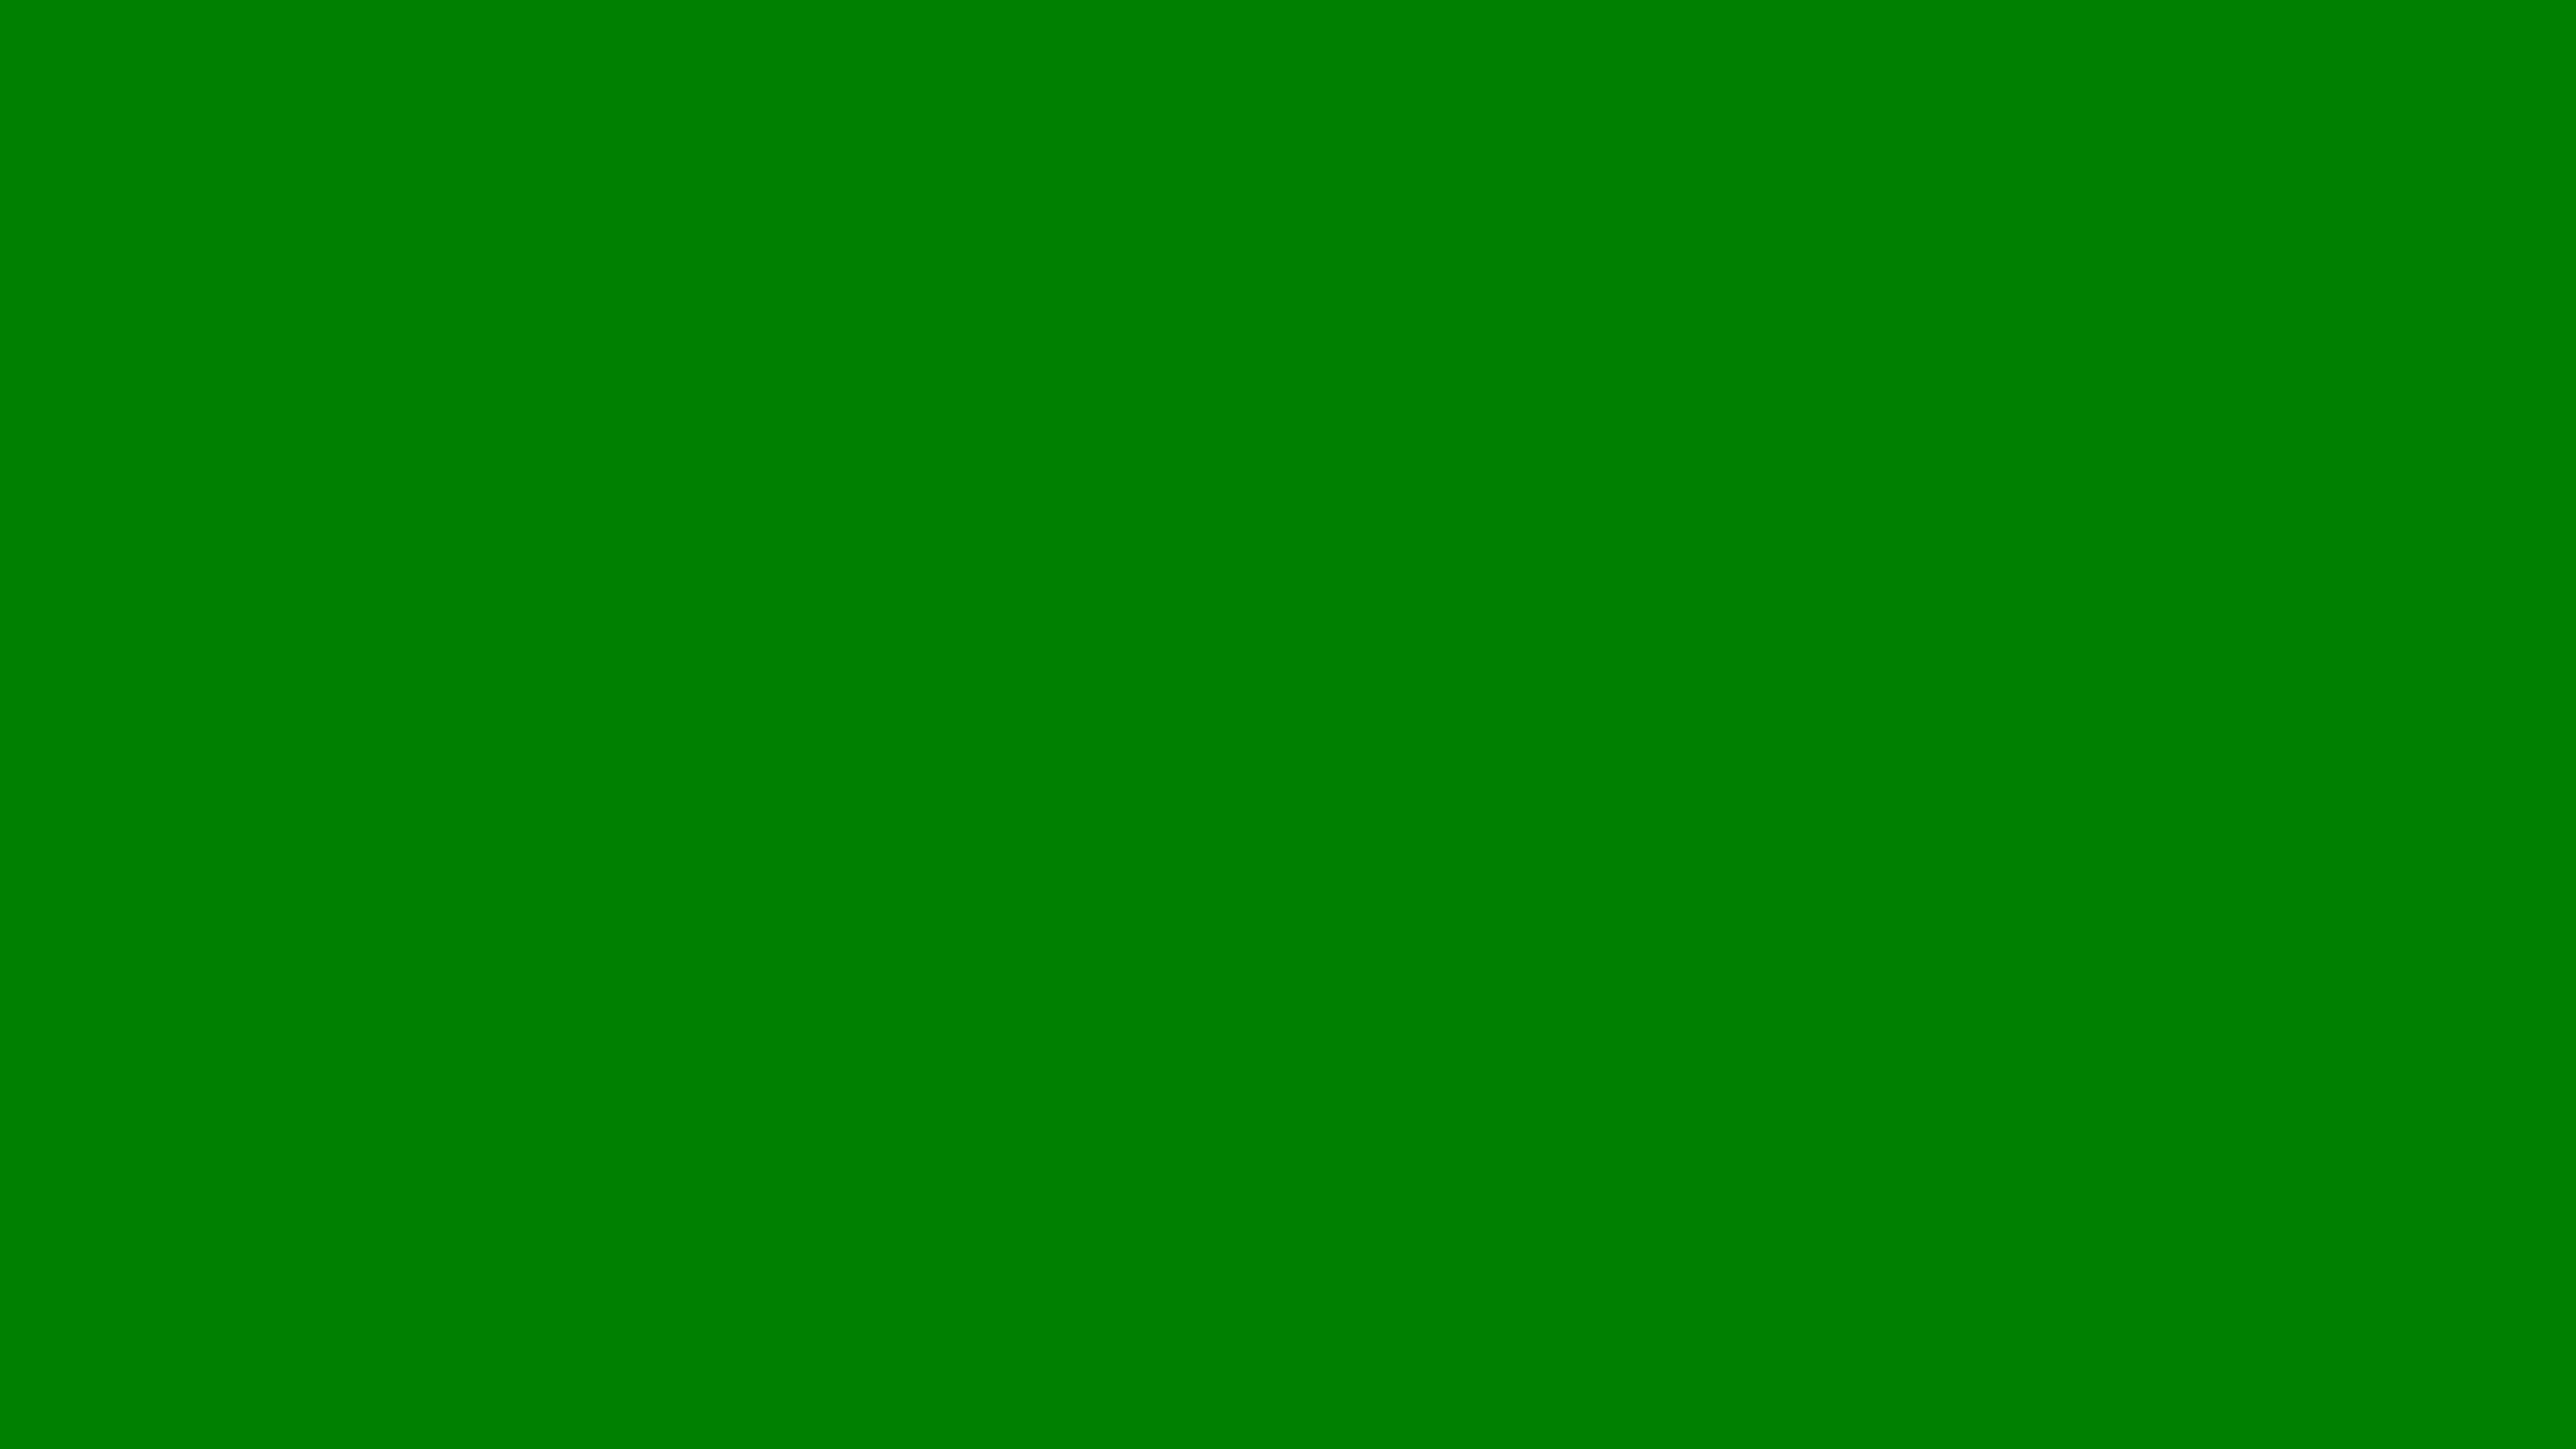 4096x2304 Green Web Color Solid Color Background